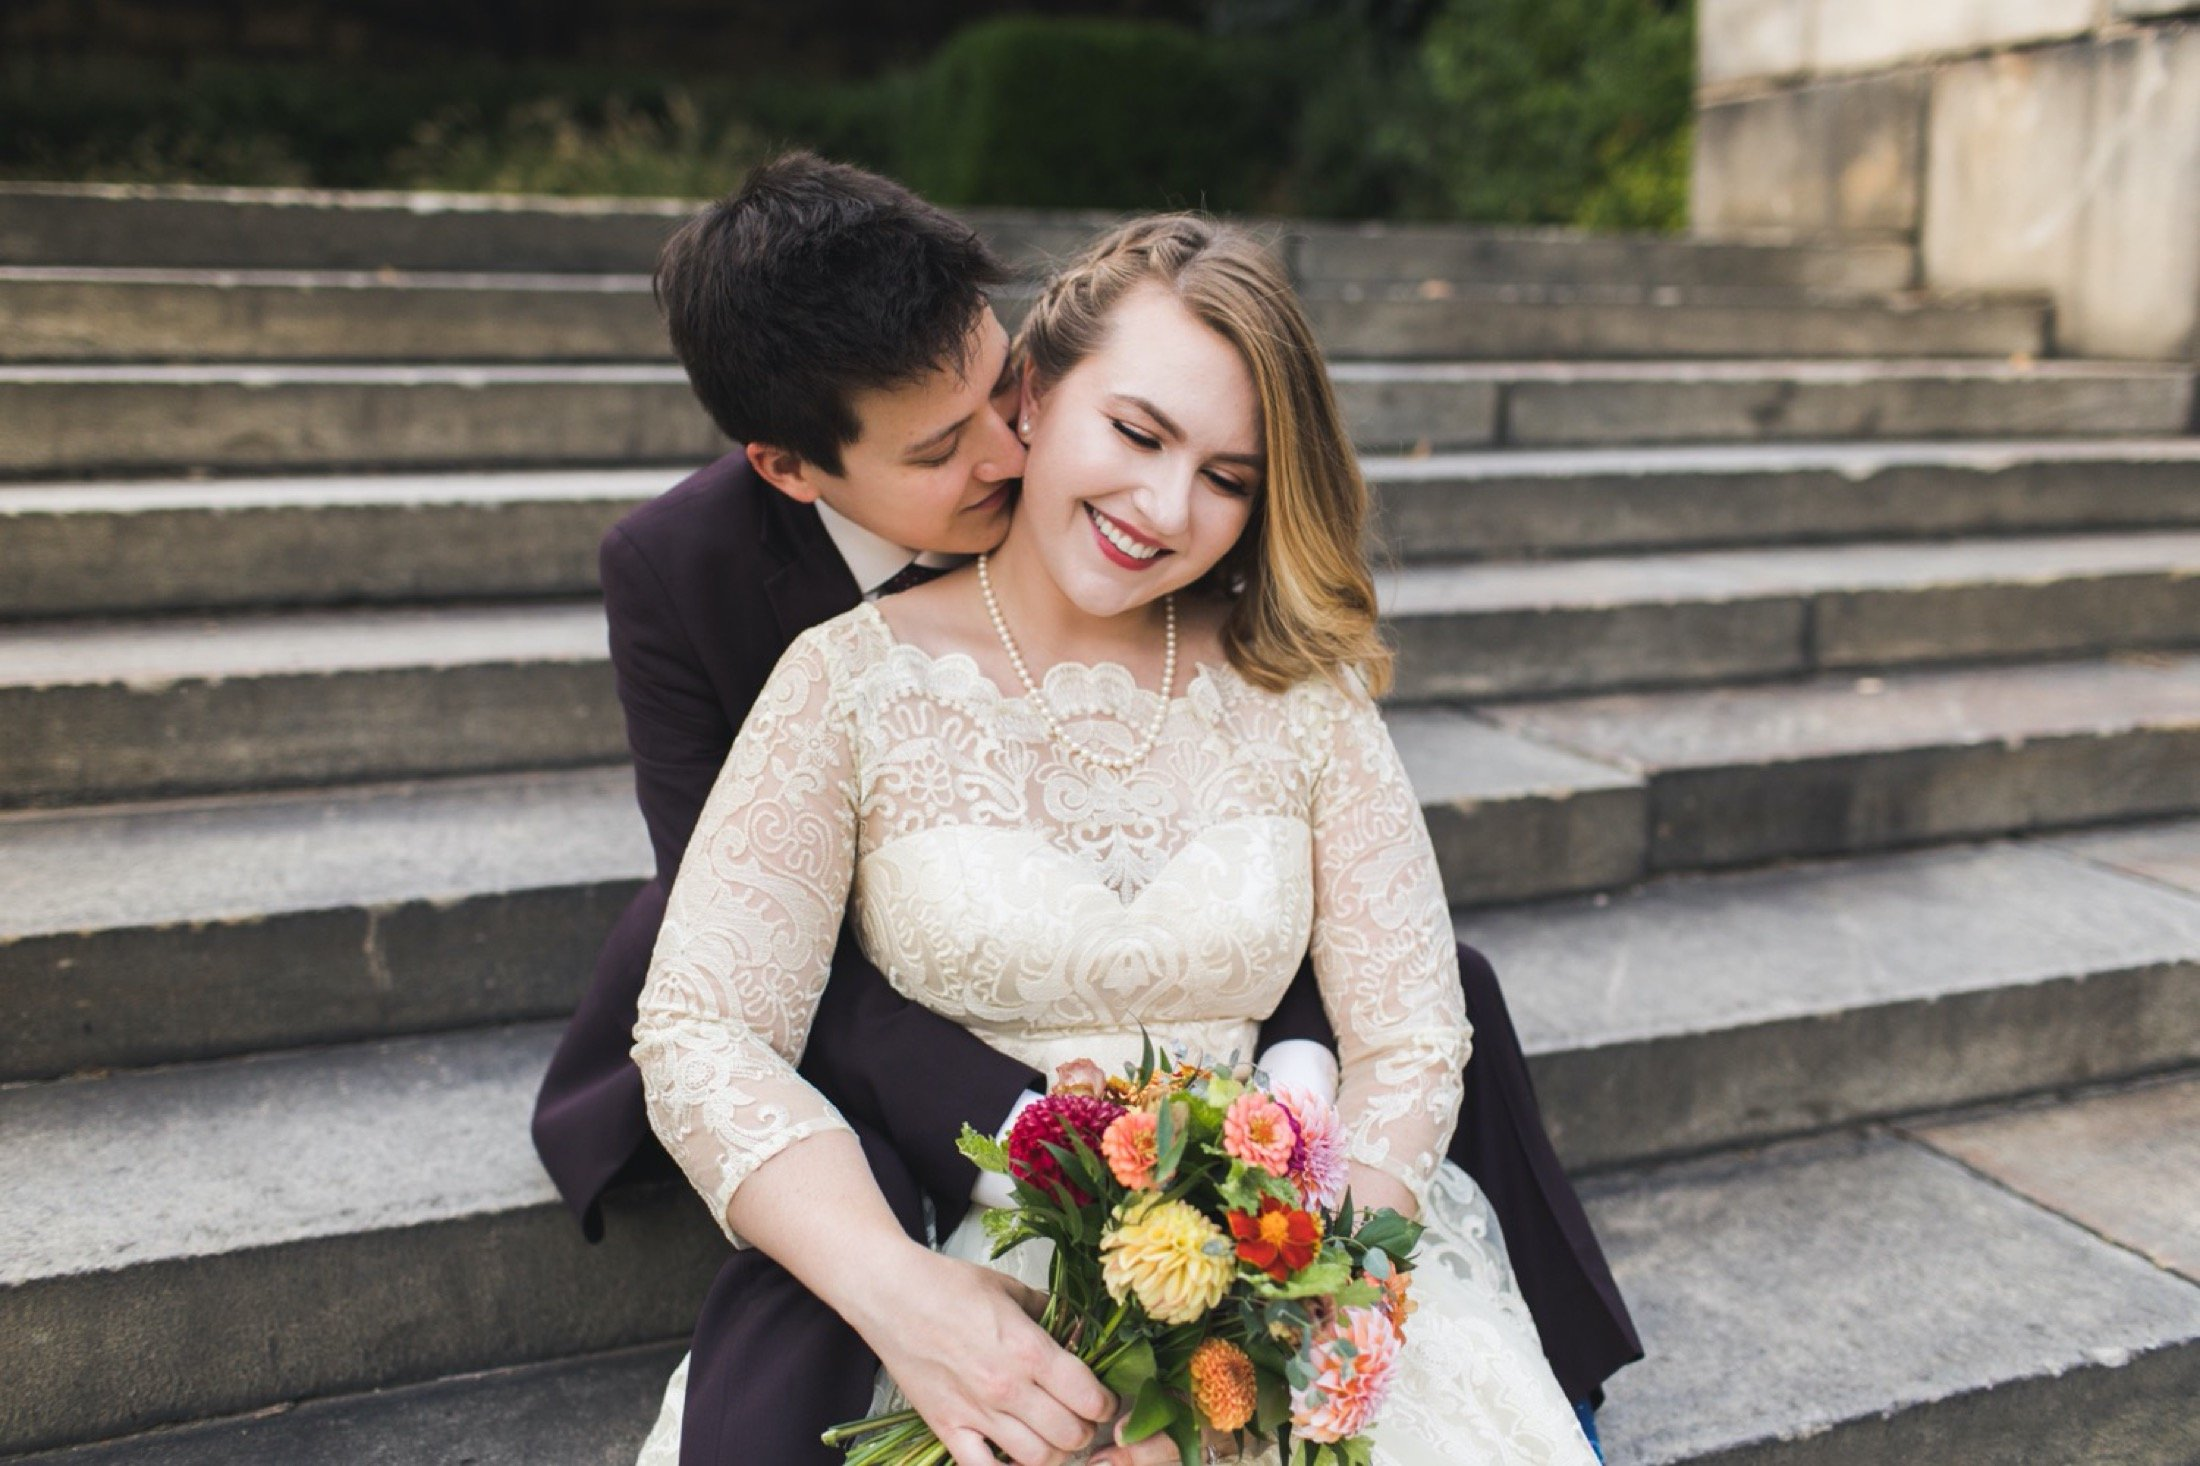 Philadelphia Museum of Art, elopement, Philadelphia, microwedding